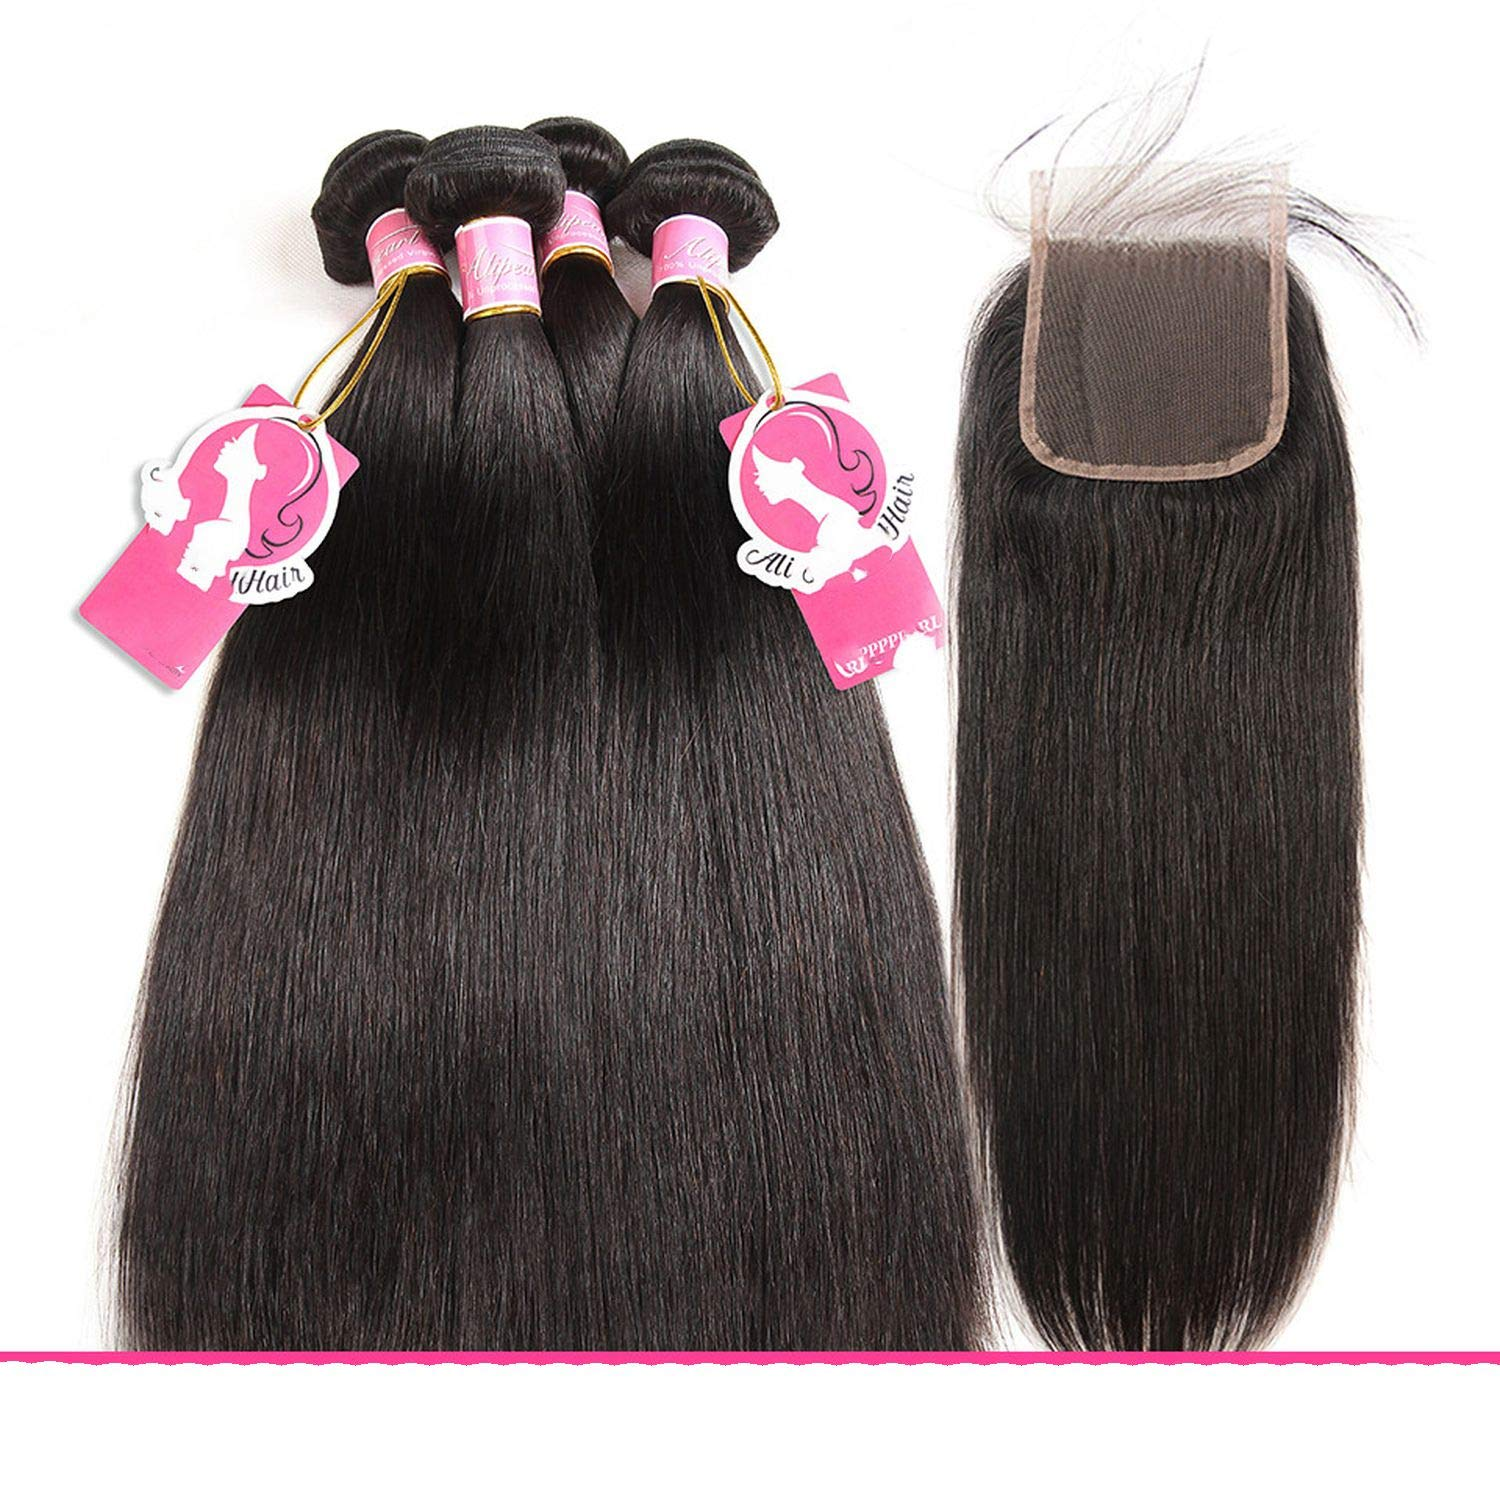 Hair Virgin Curly Weave Human Hair With Closure 4PCS Brazilian Virgin Hair Weave Bundles with Closure Swiss Lace Hair,18 & 20 & 22 & Closure 16,Natural Color,Free Part